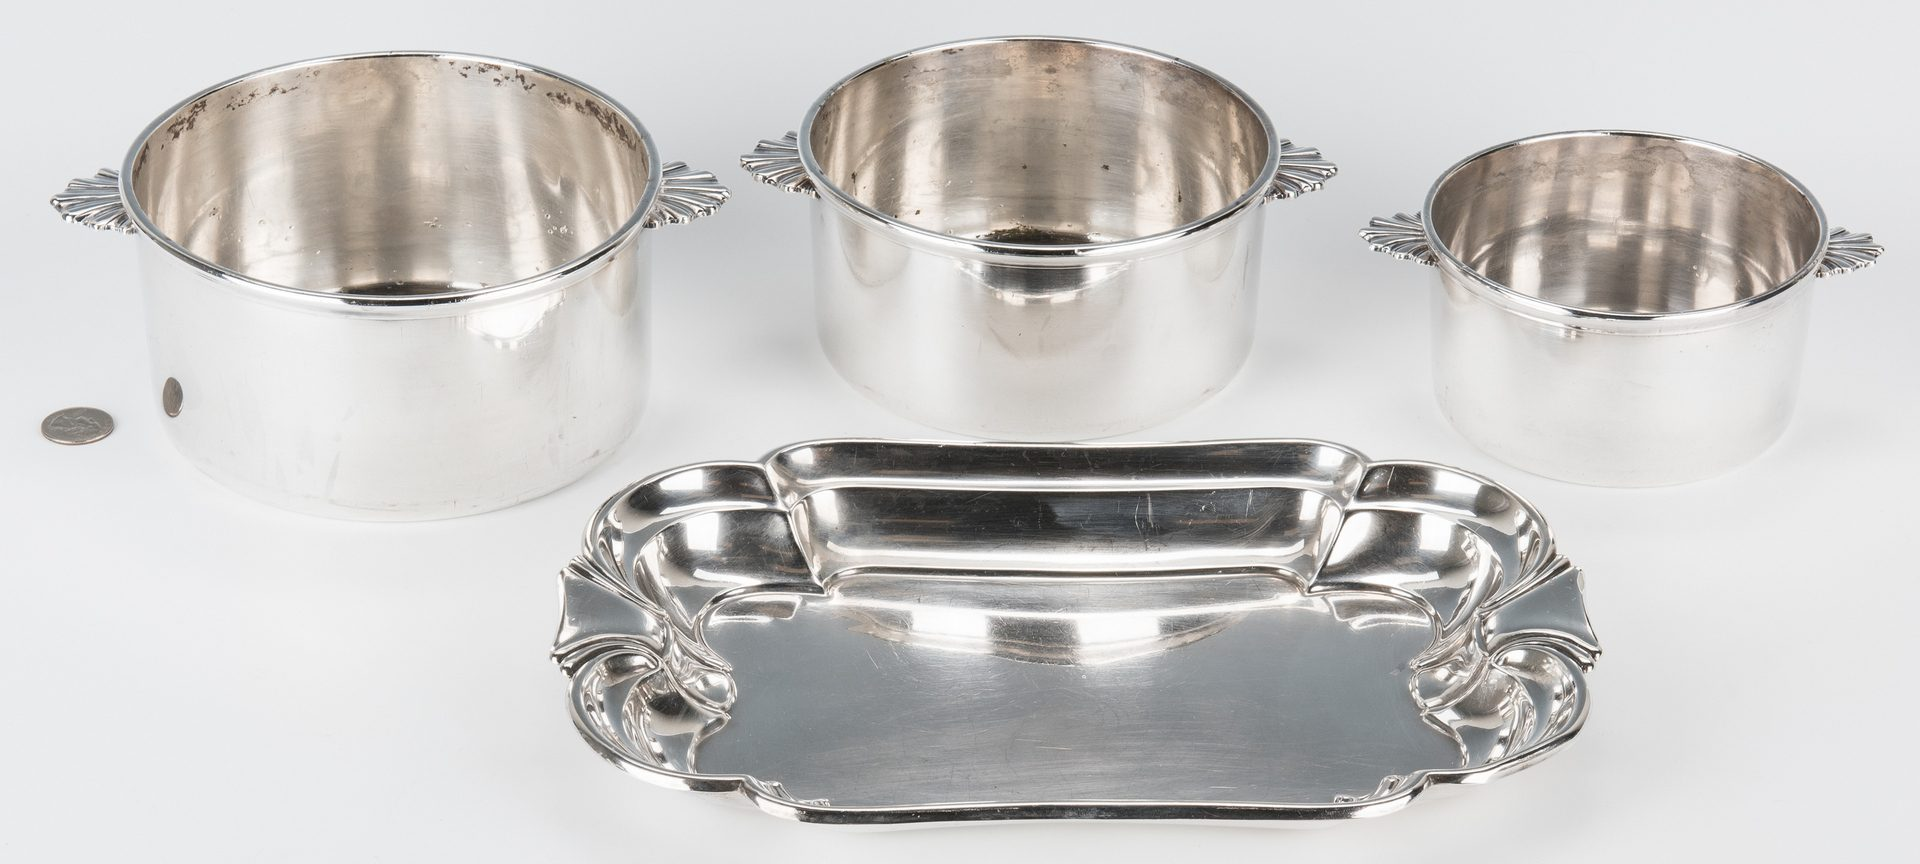 Lot 837: International Sterling Tray & 3 Christofle Nesting Pots, 4 items